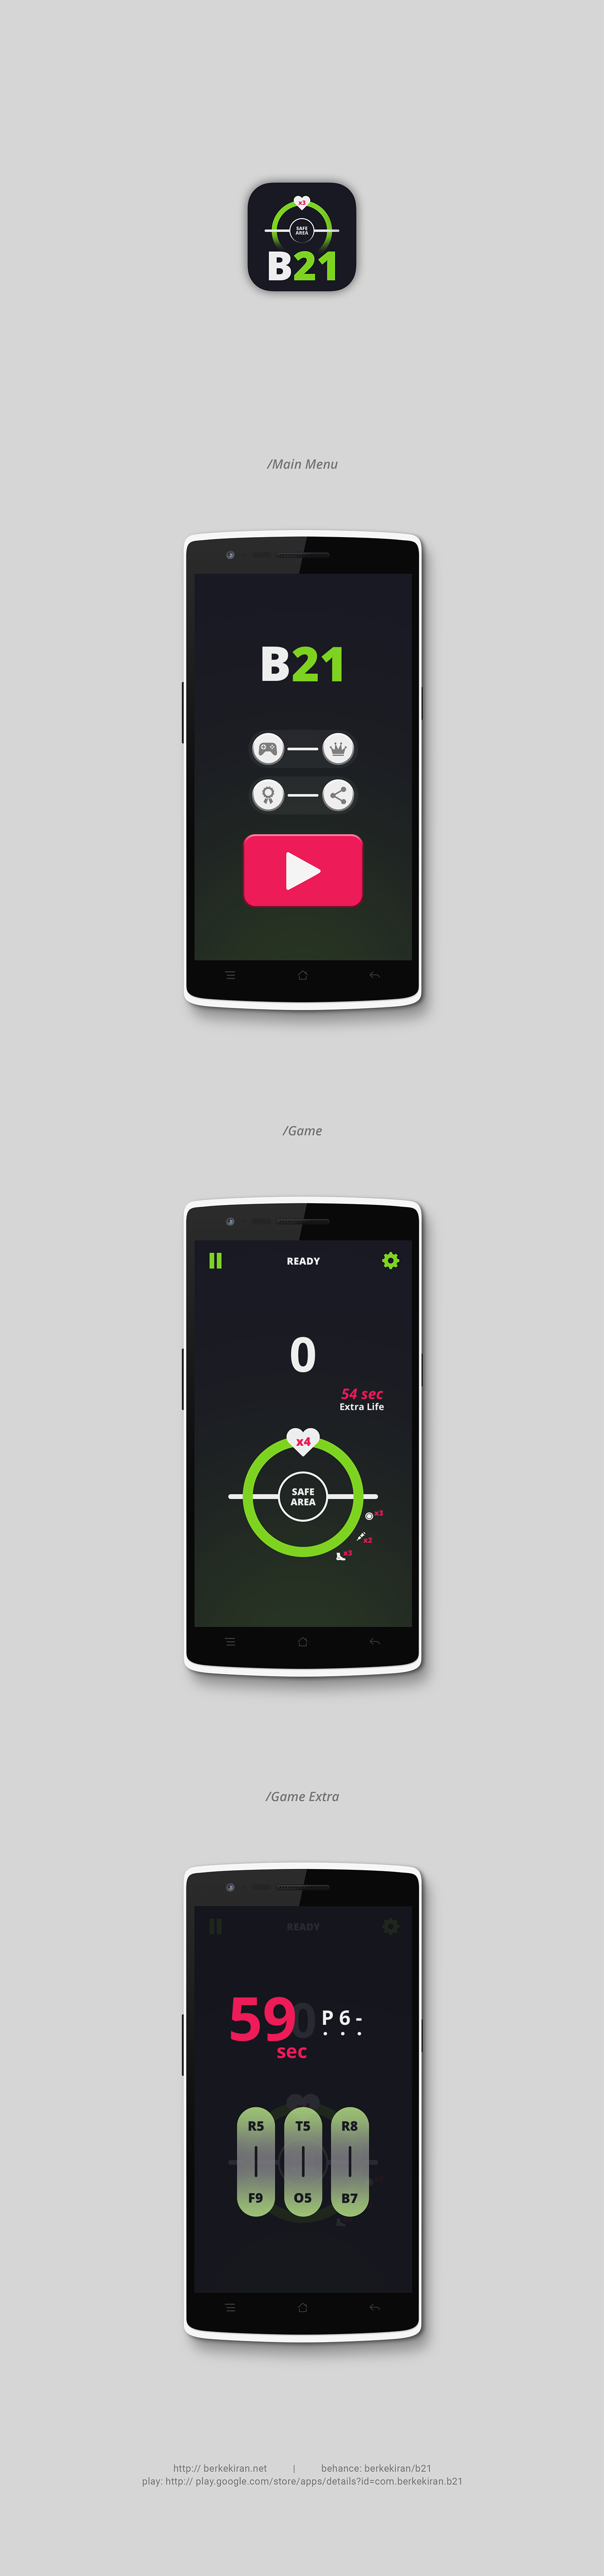 b21-android-game